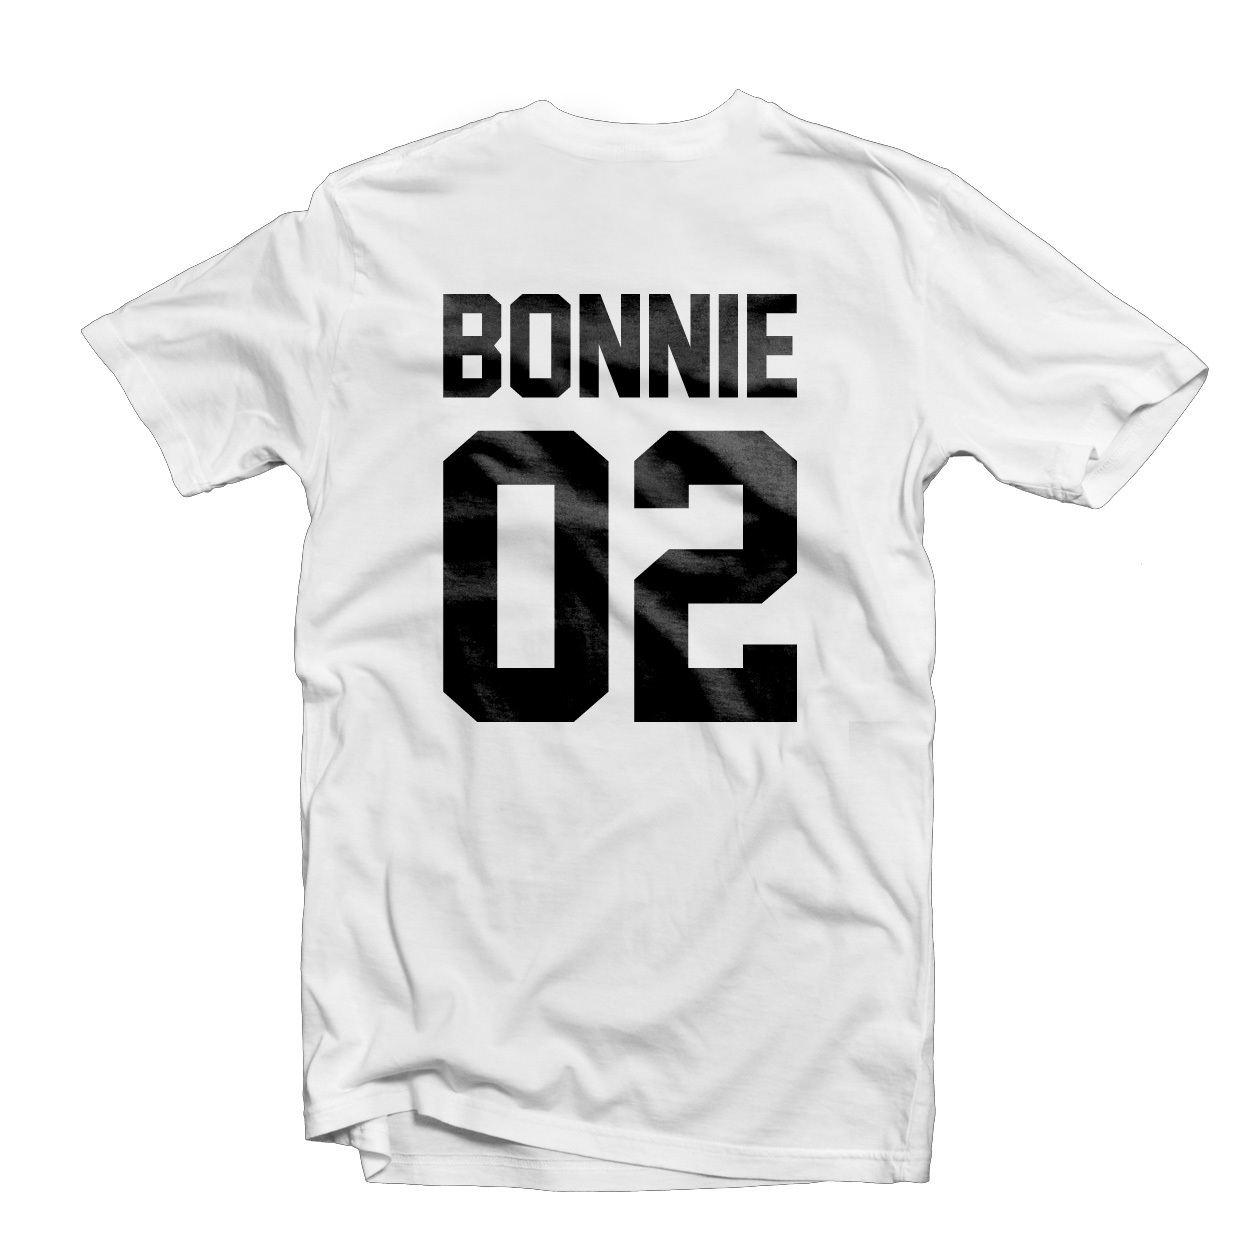 Clyde jay z beyonce jersey gangster dope rap hip hip swag